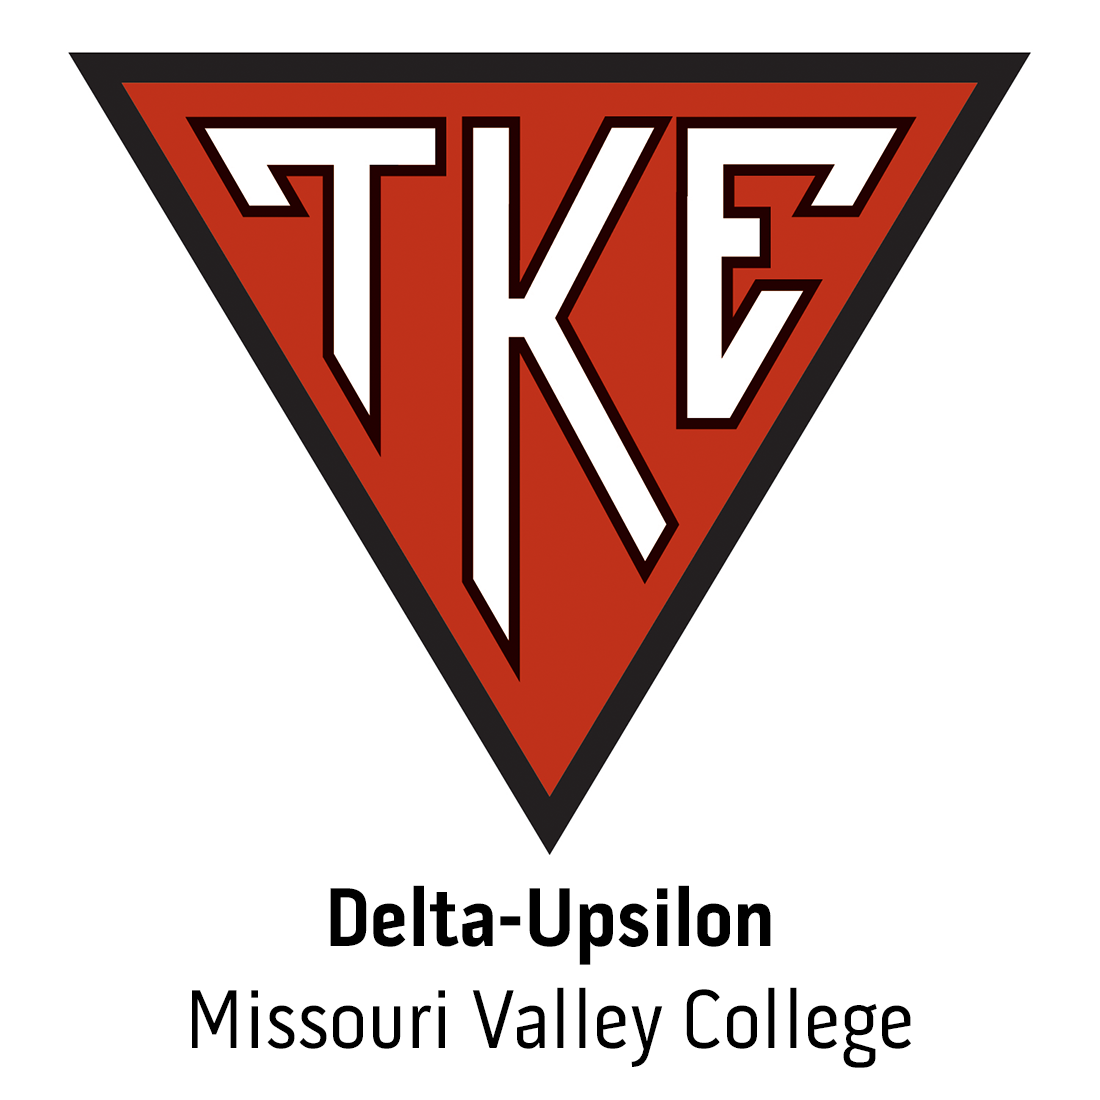 Delta-Upsilon Chapter at Missouri Valley College